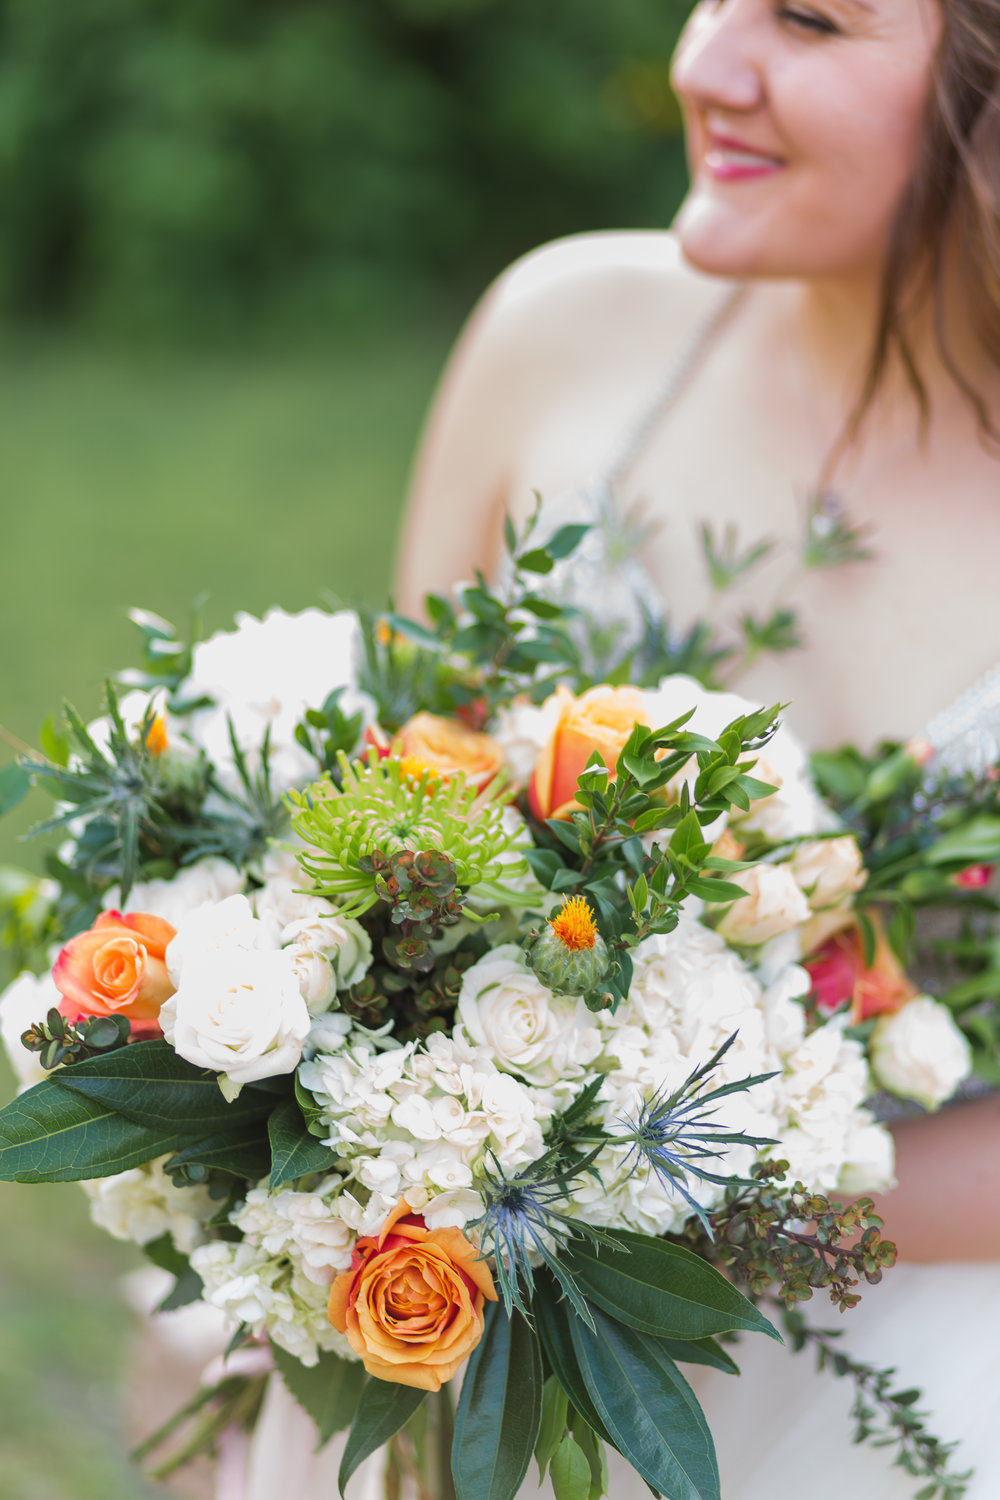 And check out her bouquet. She wanted peonies in it, and we almost took the ones from my peony bush, but she used hydrangeas instead, and it turned out beautifully!